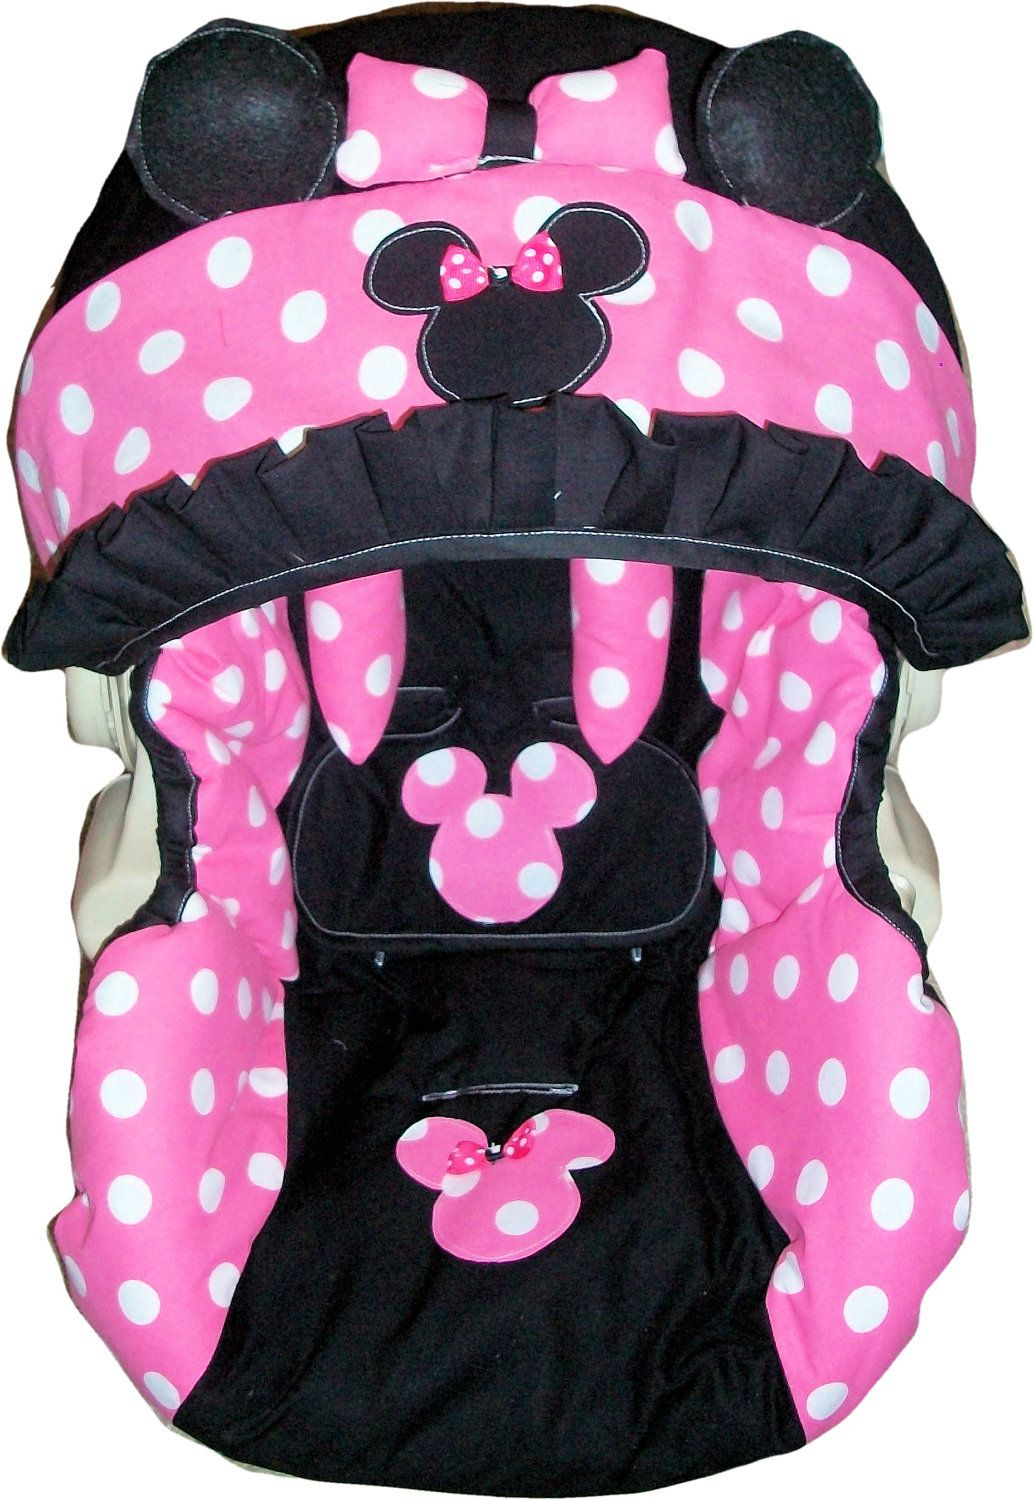 Minnie Mouse Baby Stuff